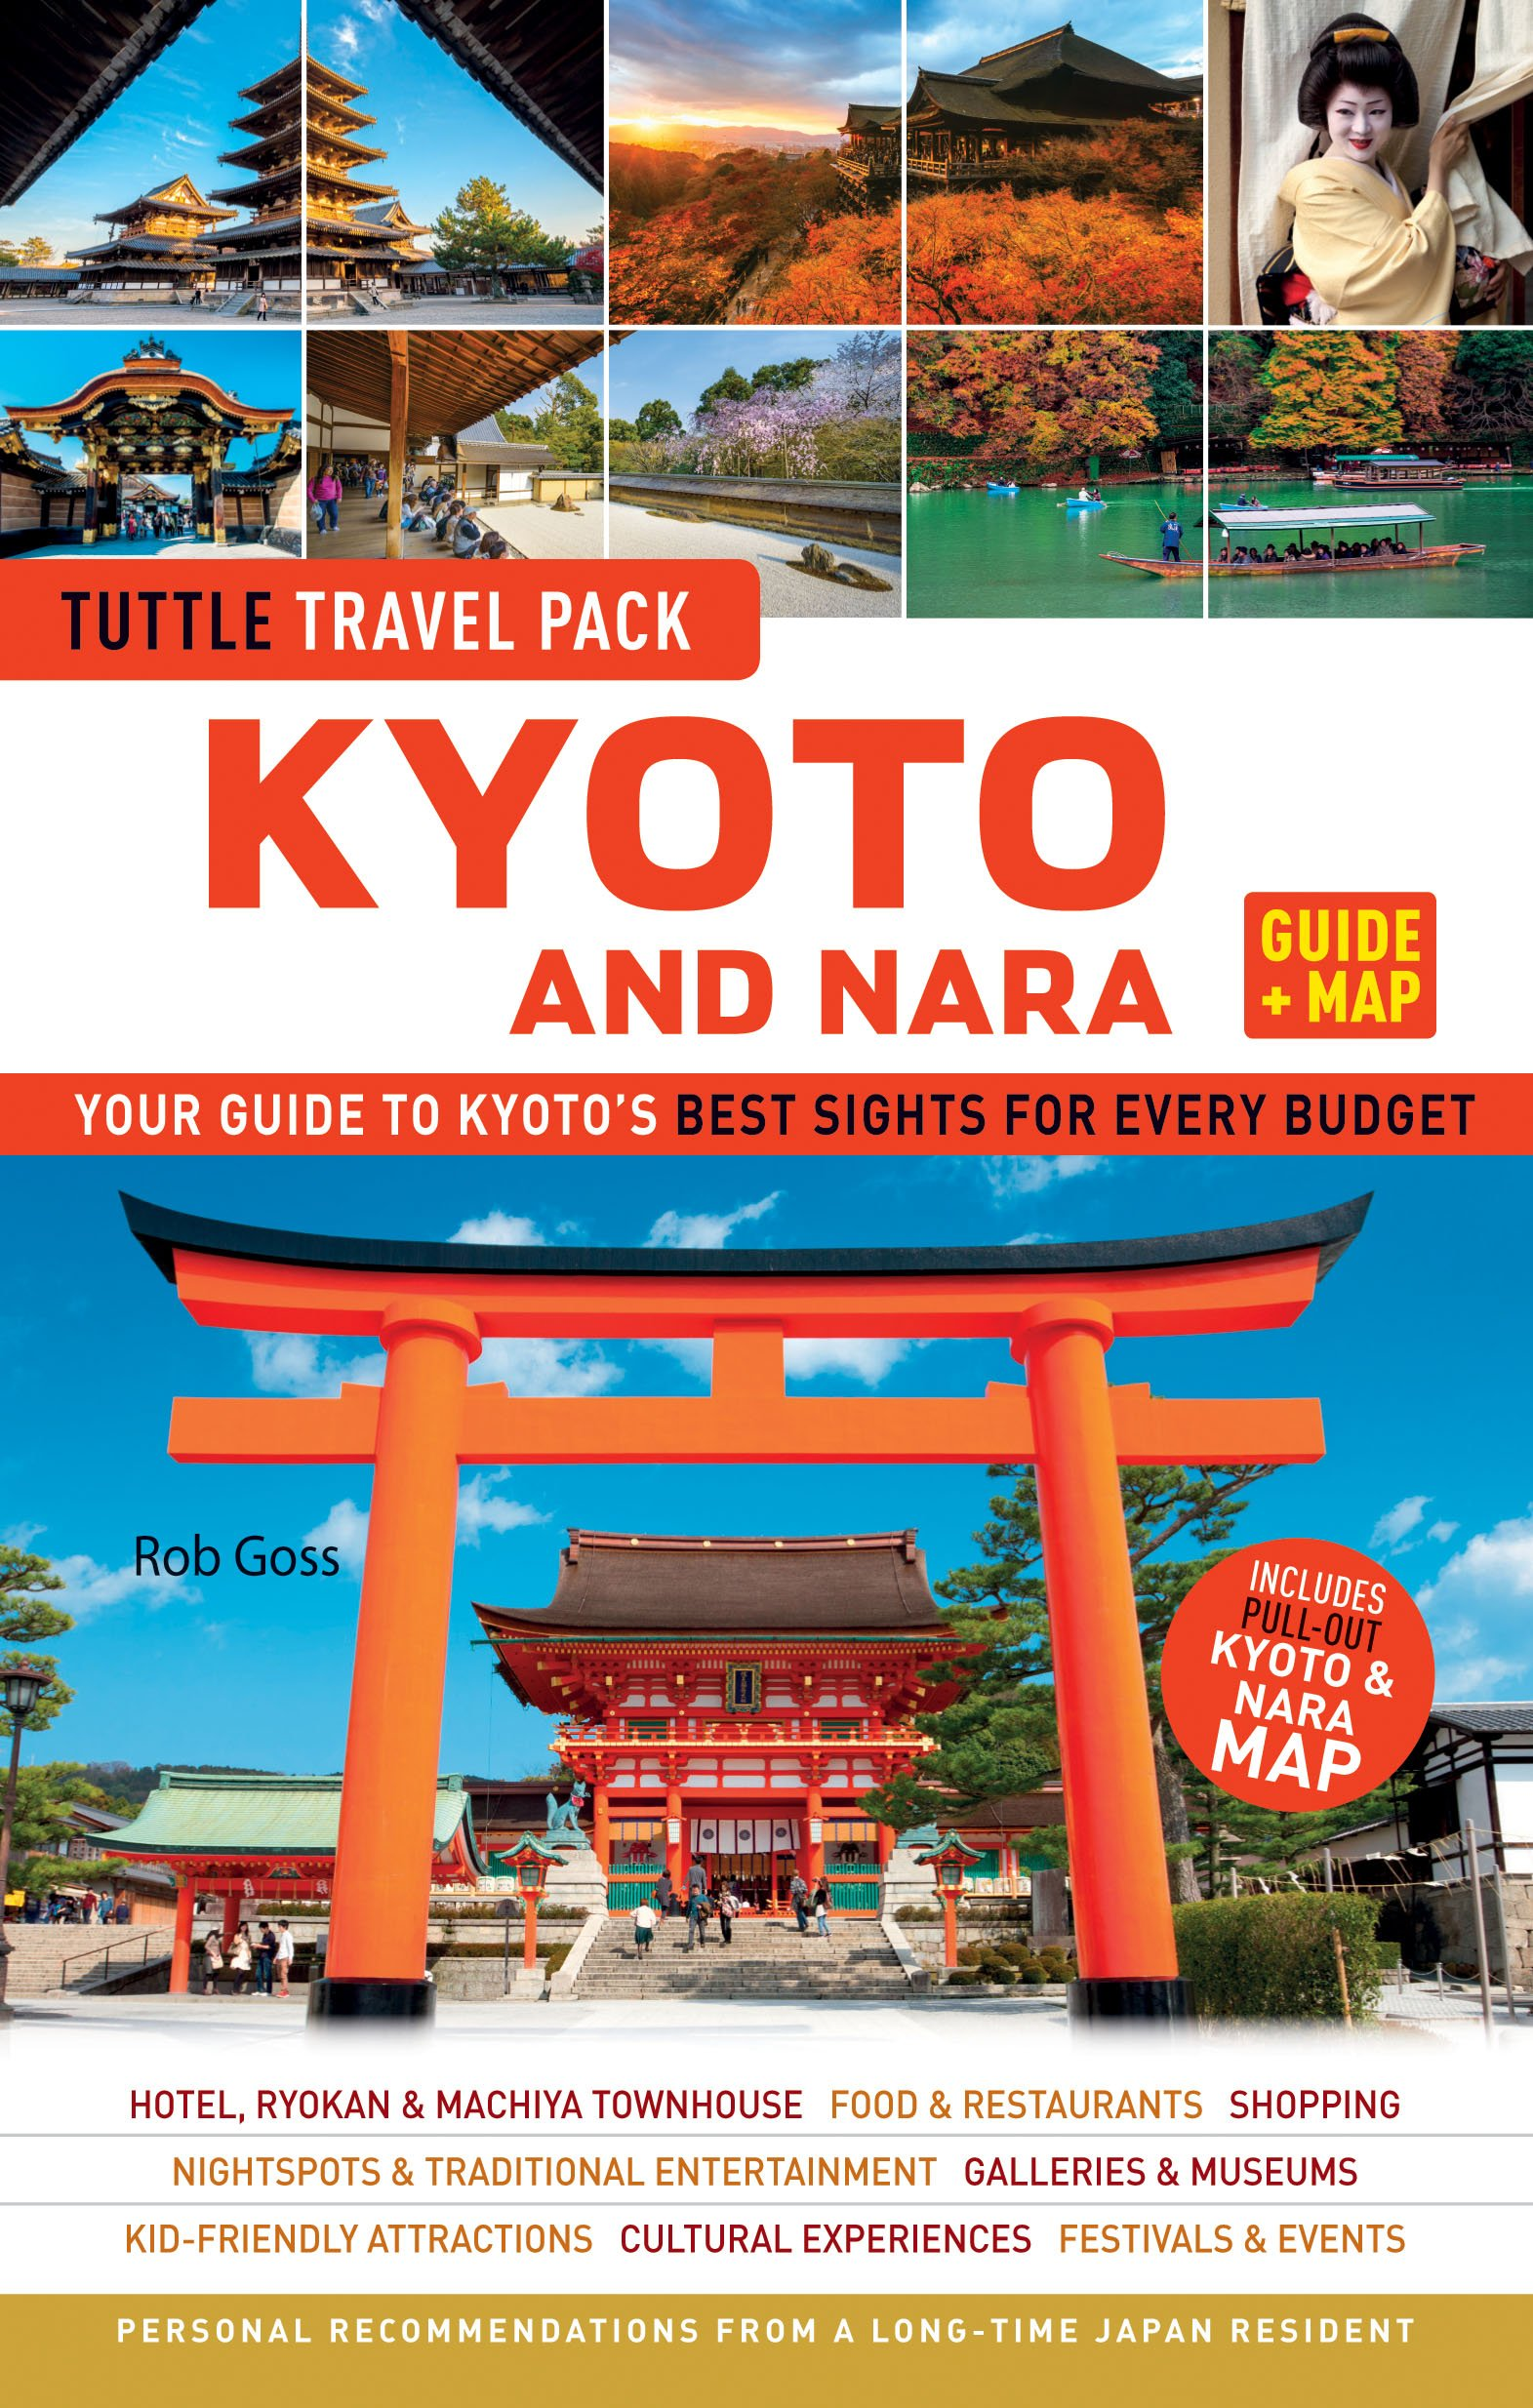 Kyoto and Nara Tuttle Travel Pack Guide + Map: Your Guide to Kyoto's on okinawa travel guide, boston travel guide, vancouver travel guide, montevideo travel guide, kumamoto travel guide, zurich travel guide, toronto travel guide, montreal travel guide, brisbane travel guide, buenos aires travel guide, seattle travel guide, tehran travel guide, london travel guide, denver travel guide, canberra travel guide, washington travel guide, warsaw travel guide, honolulu travel guide, nagano travel guide, portland travel guide,